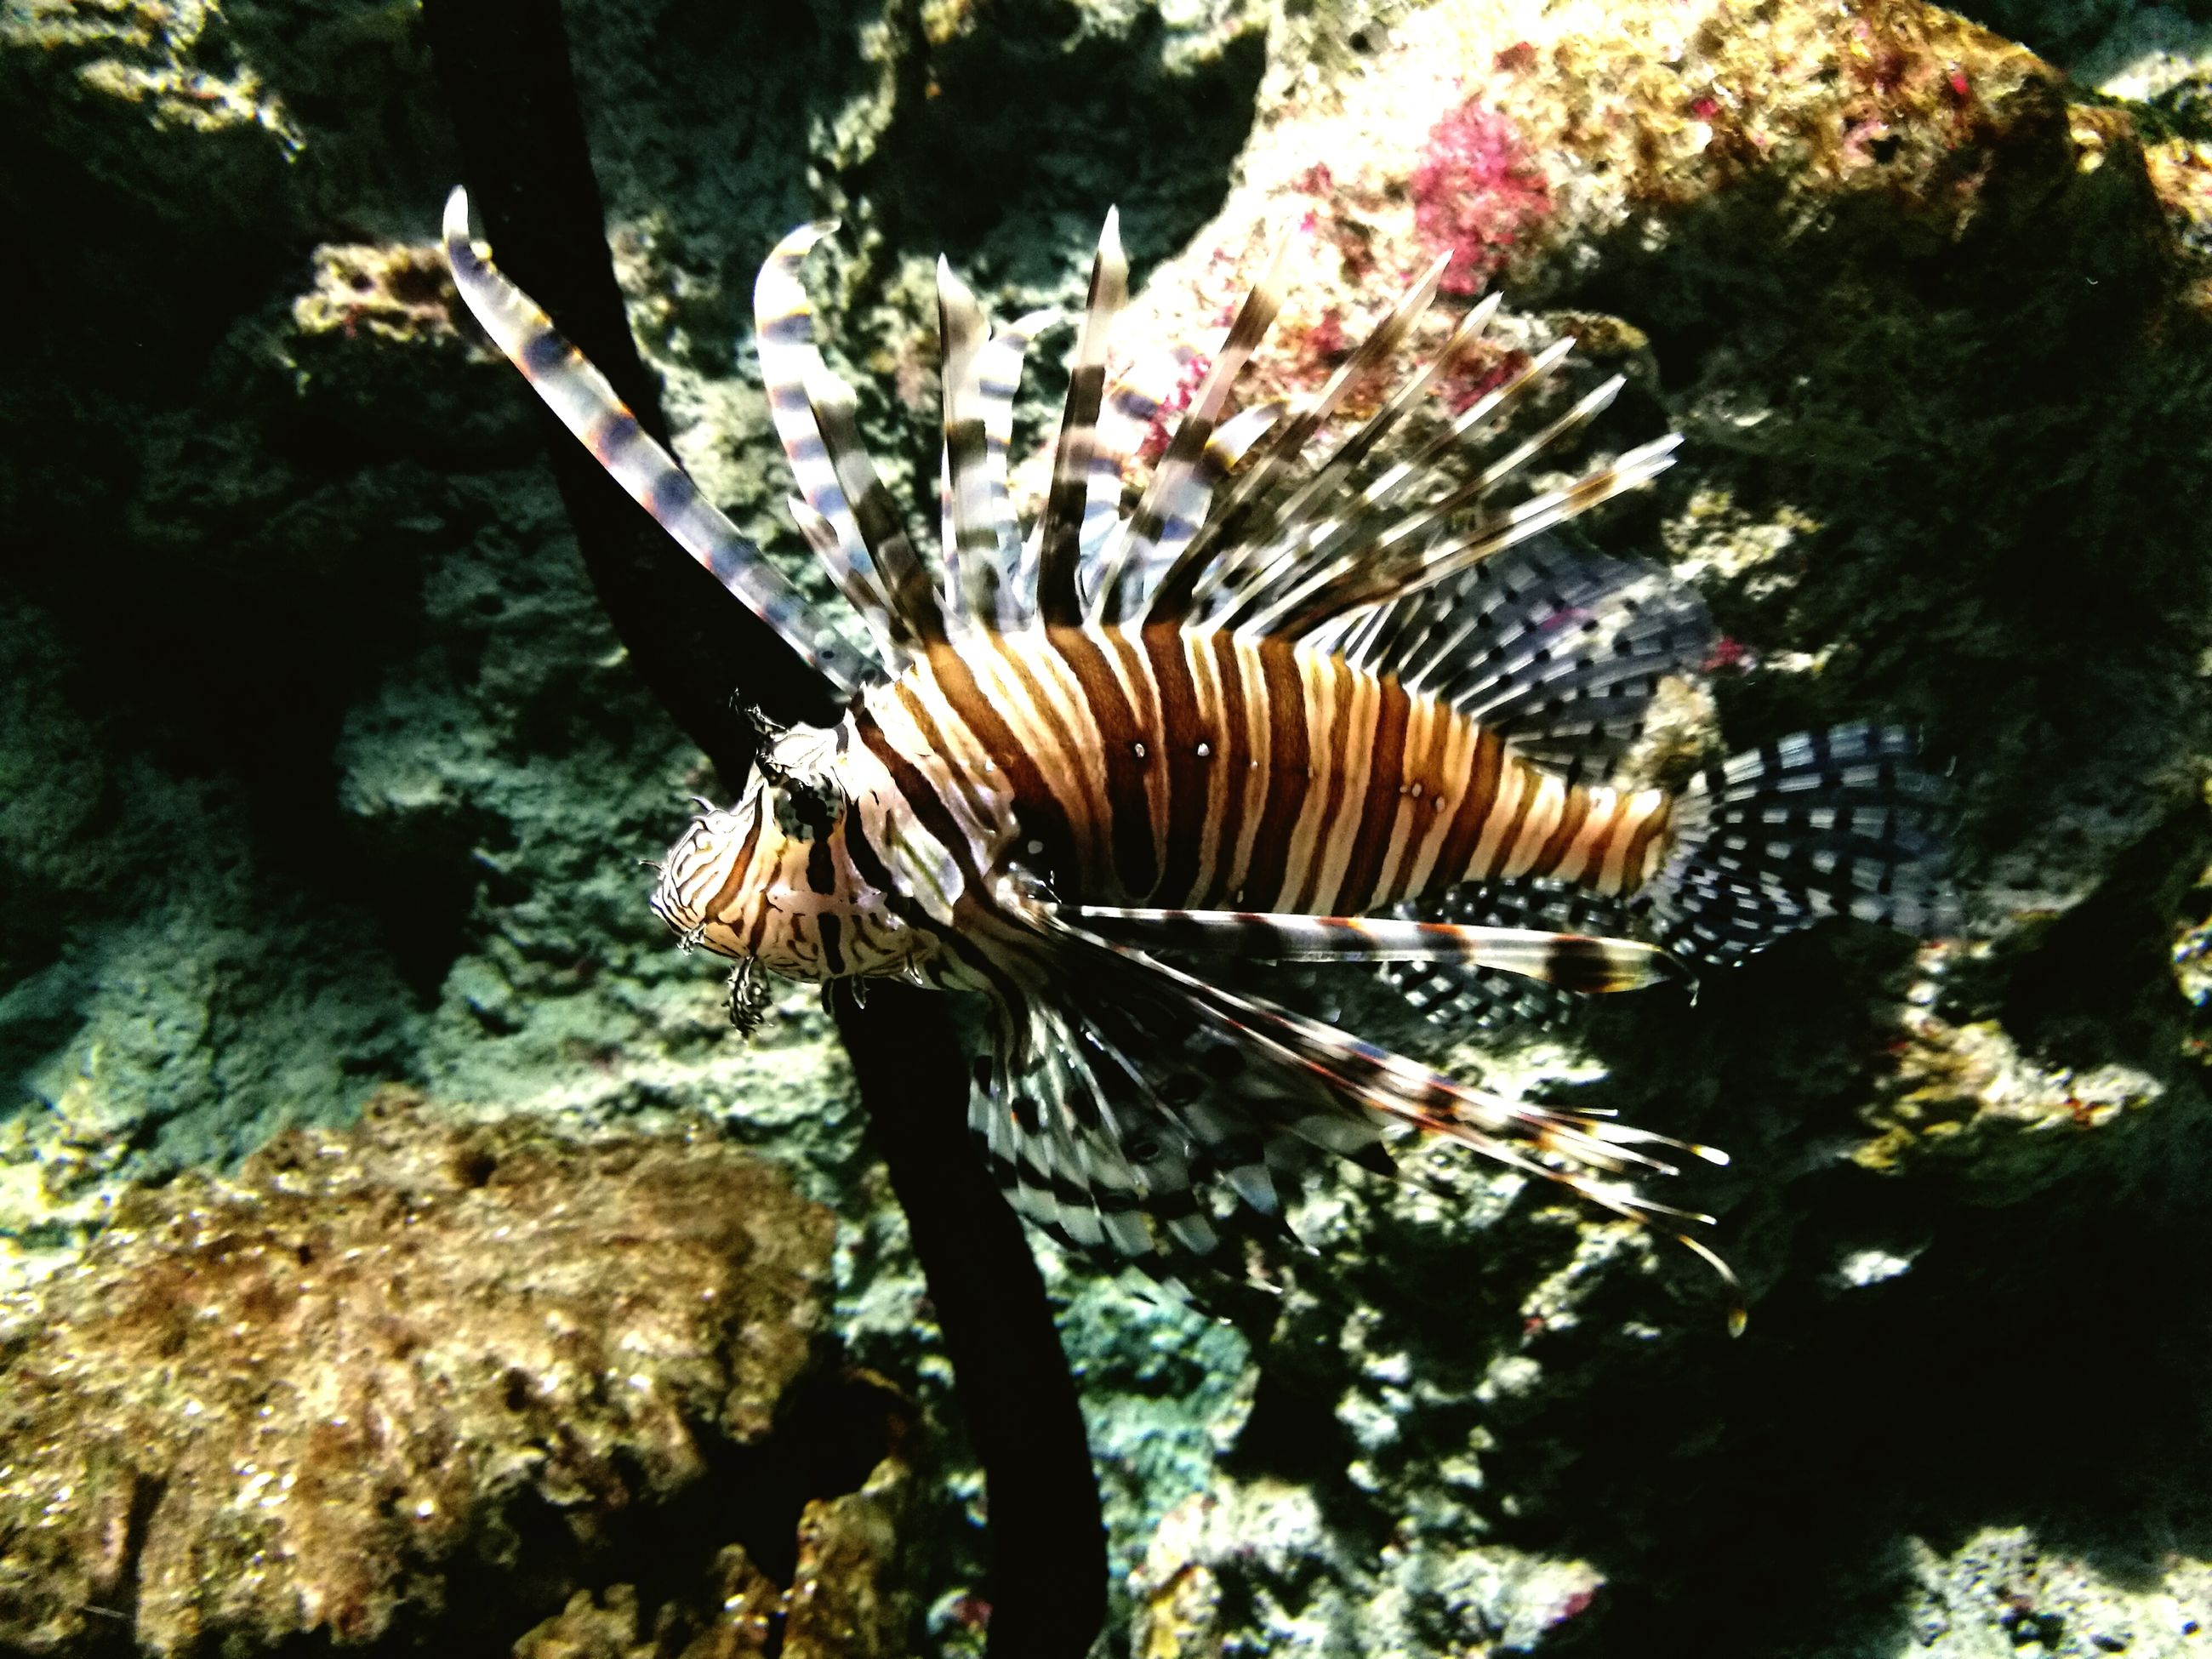 animal themes, one animal, animals in the wild, no people, nature, outdoors, insect, day, close-up, sea life, undersea